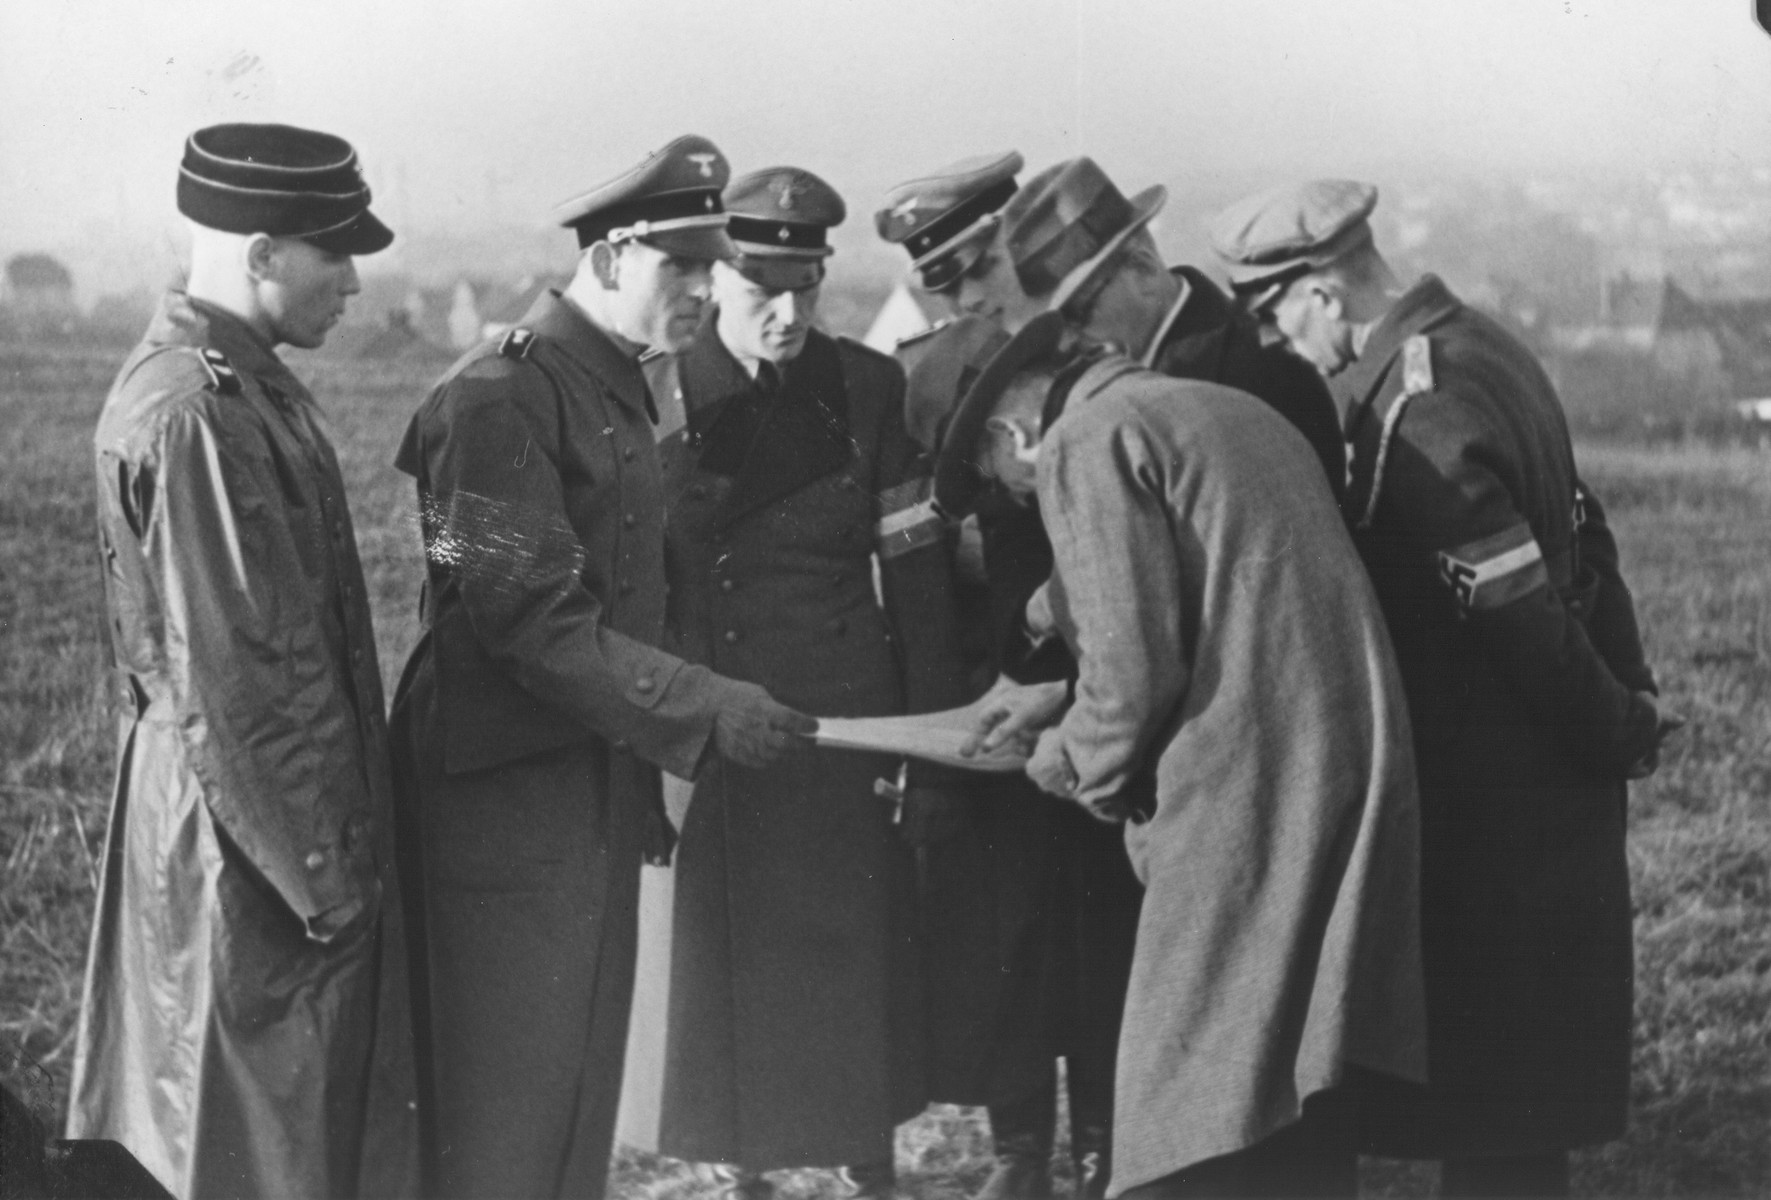 A group of uniformed Germans look on as two civilians study a map in an open field.